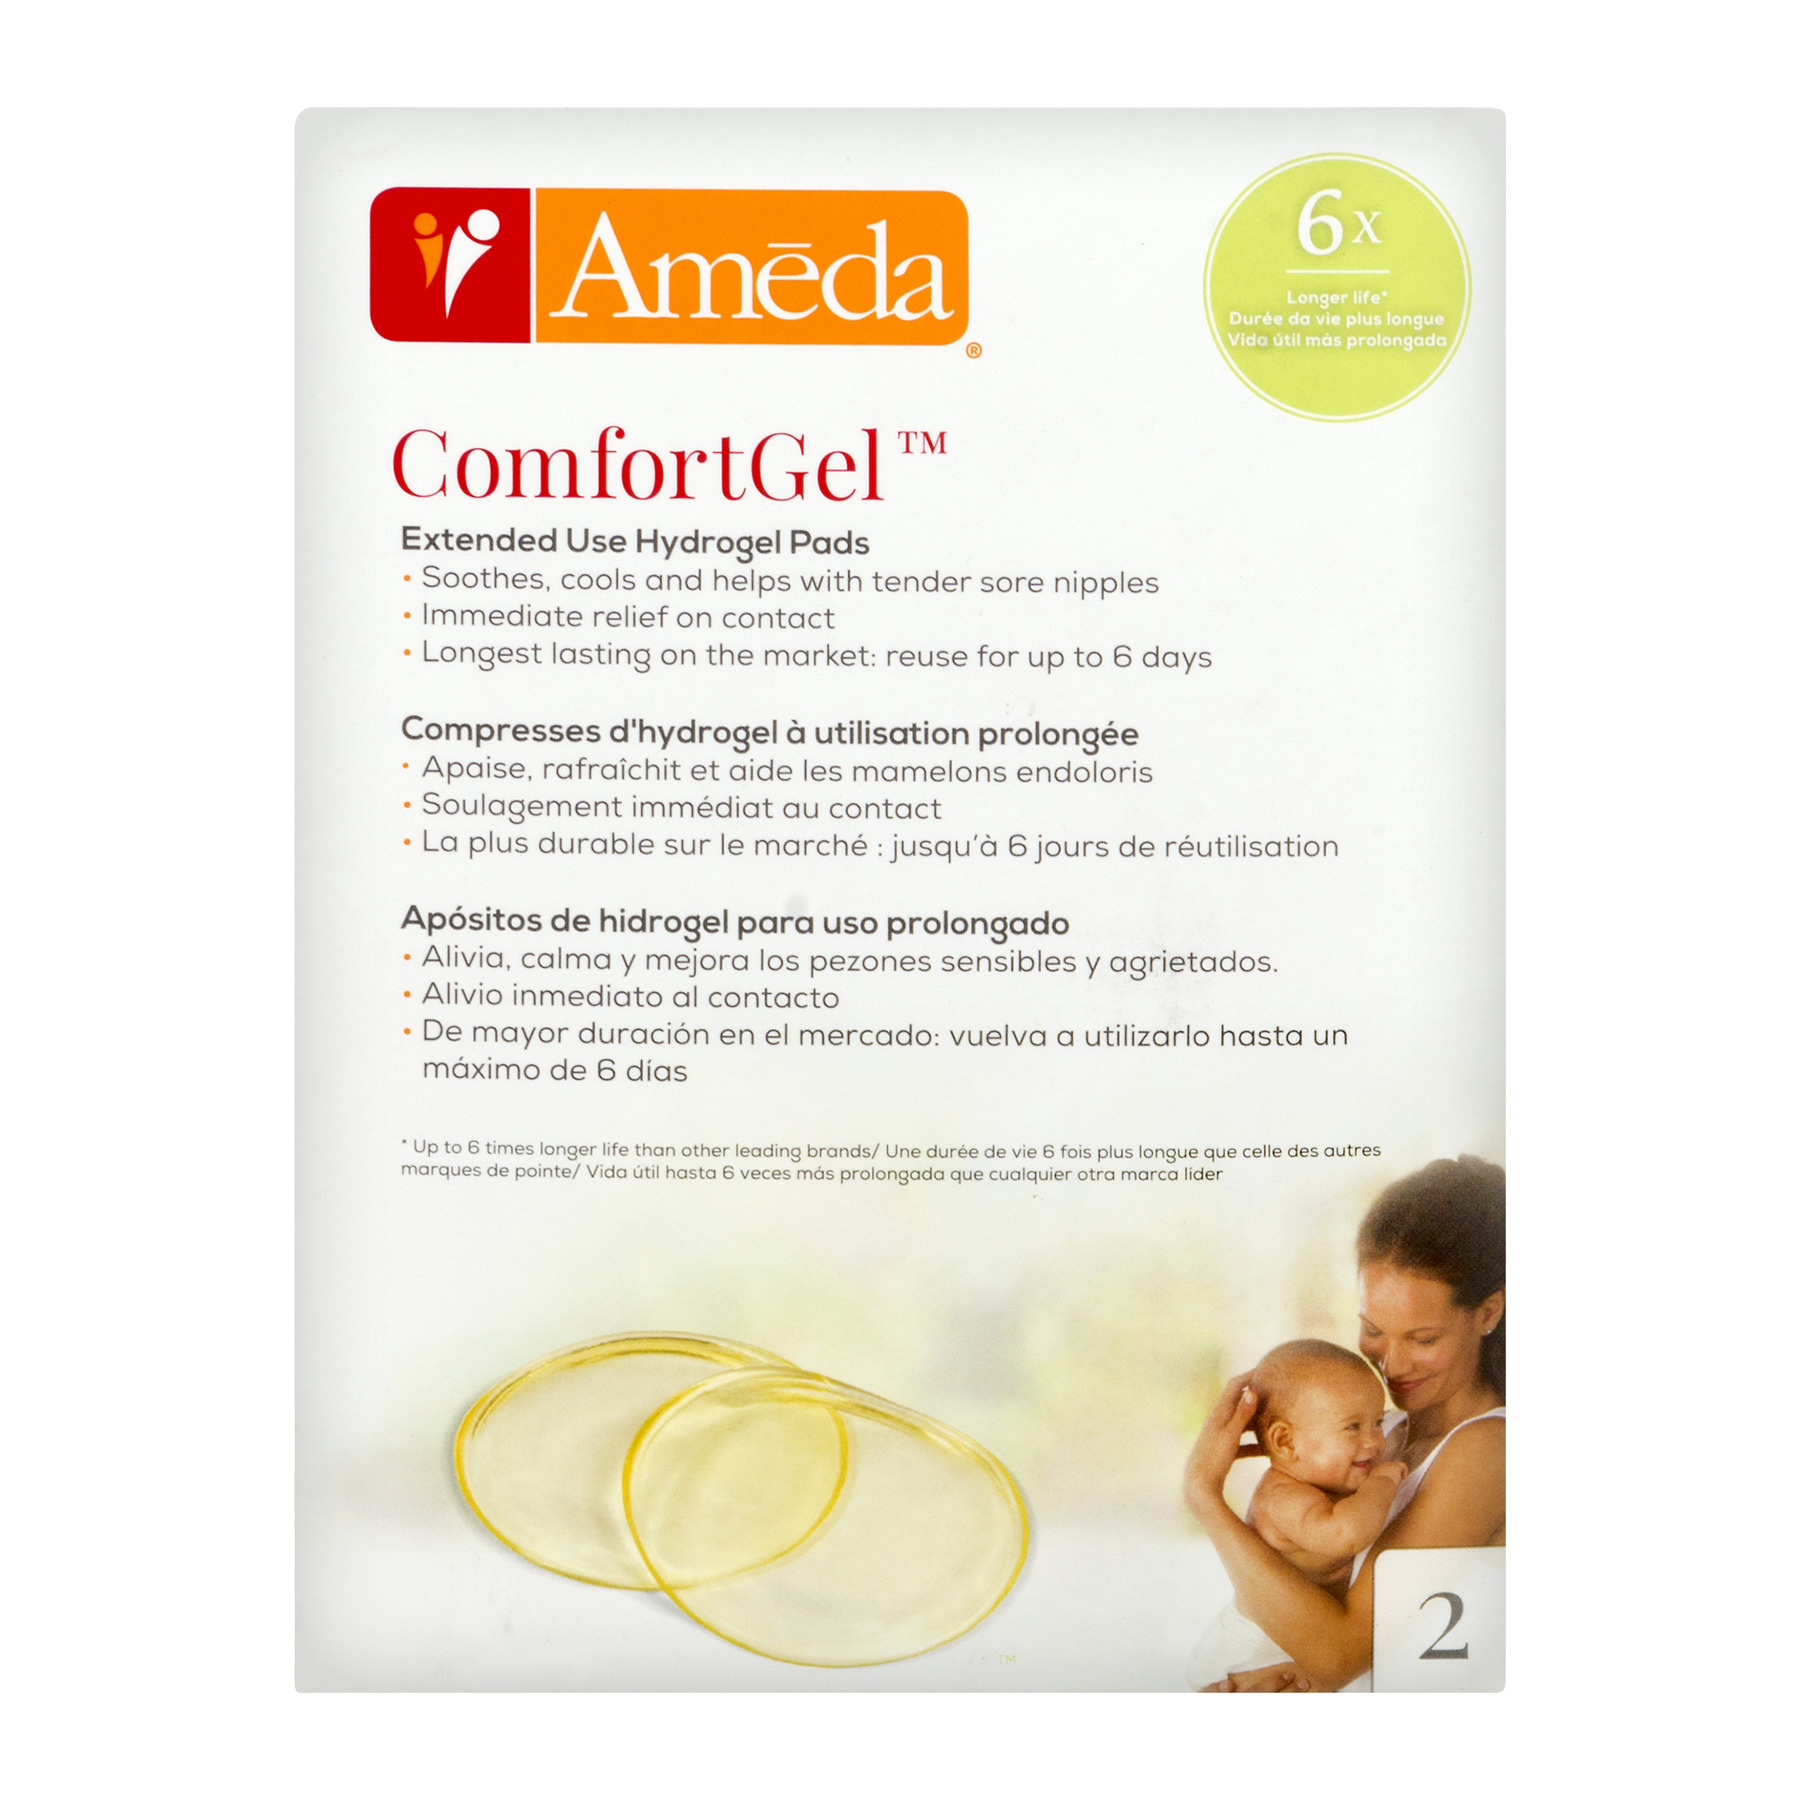 Ameda ComfortGel Extended Use Hydrogel Pads - 2 PK, 2.0 PACK